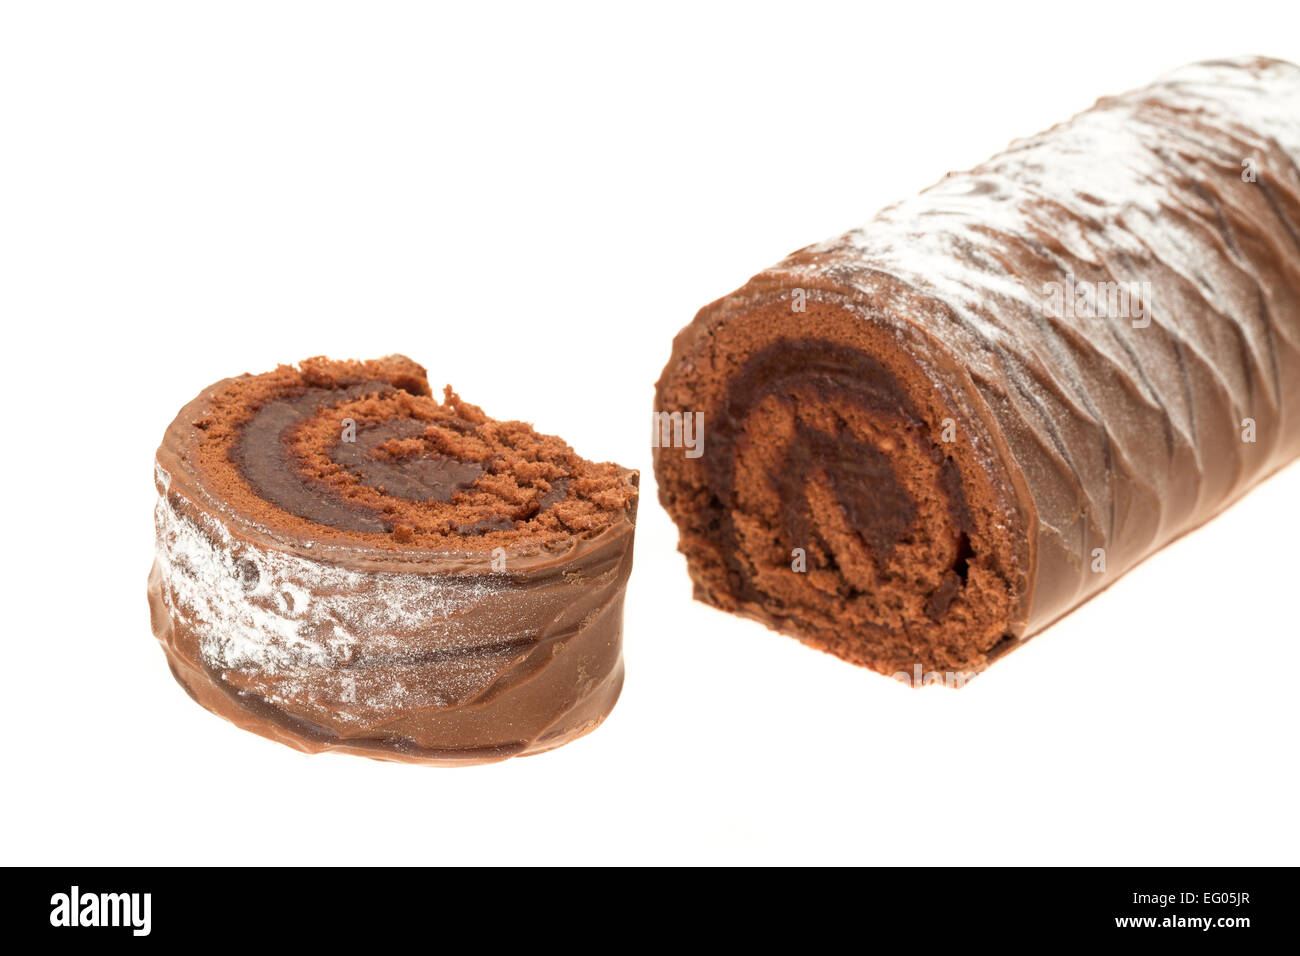 A chocolate coated yule log - studio shot with a white background - Stock Image